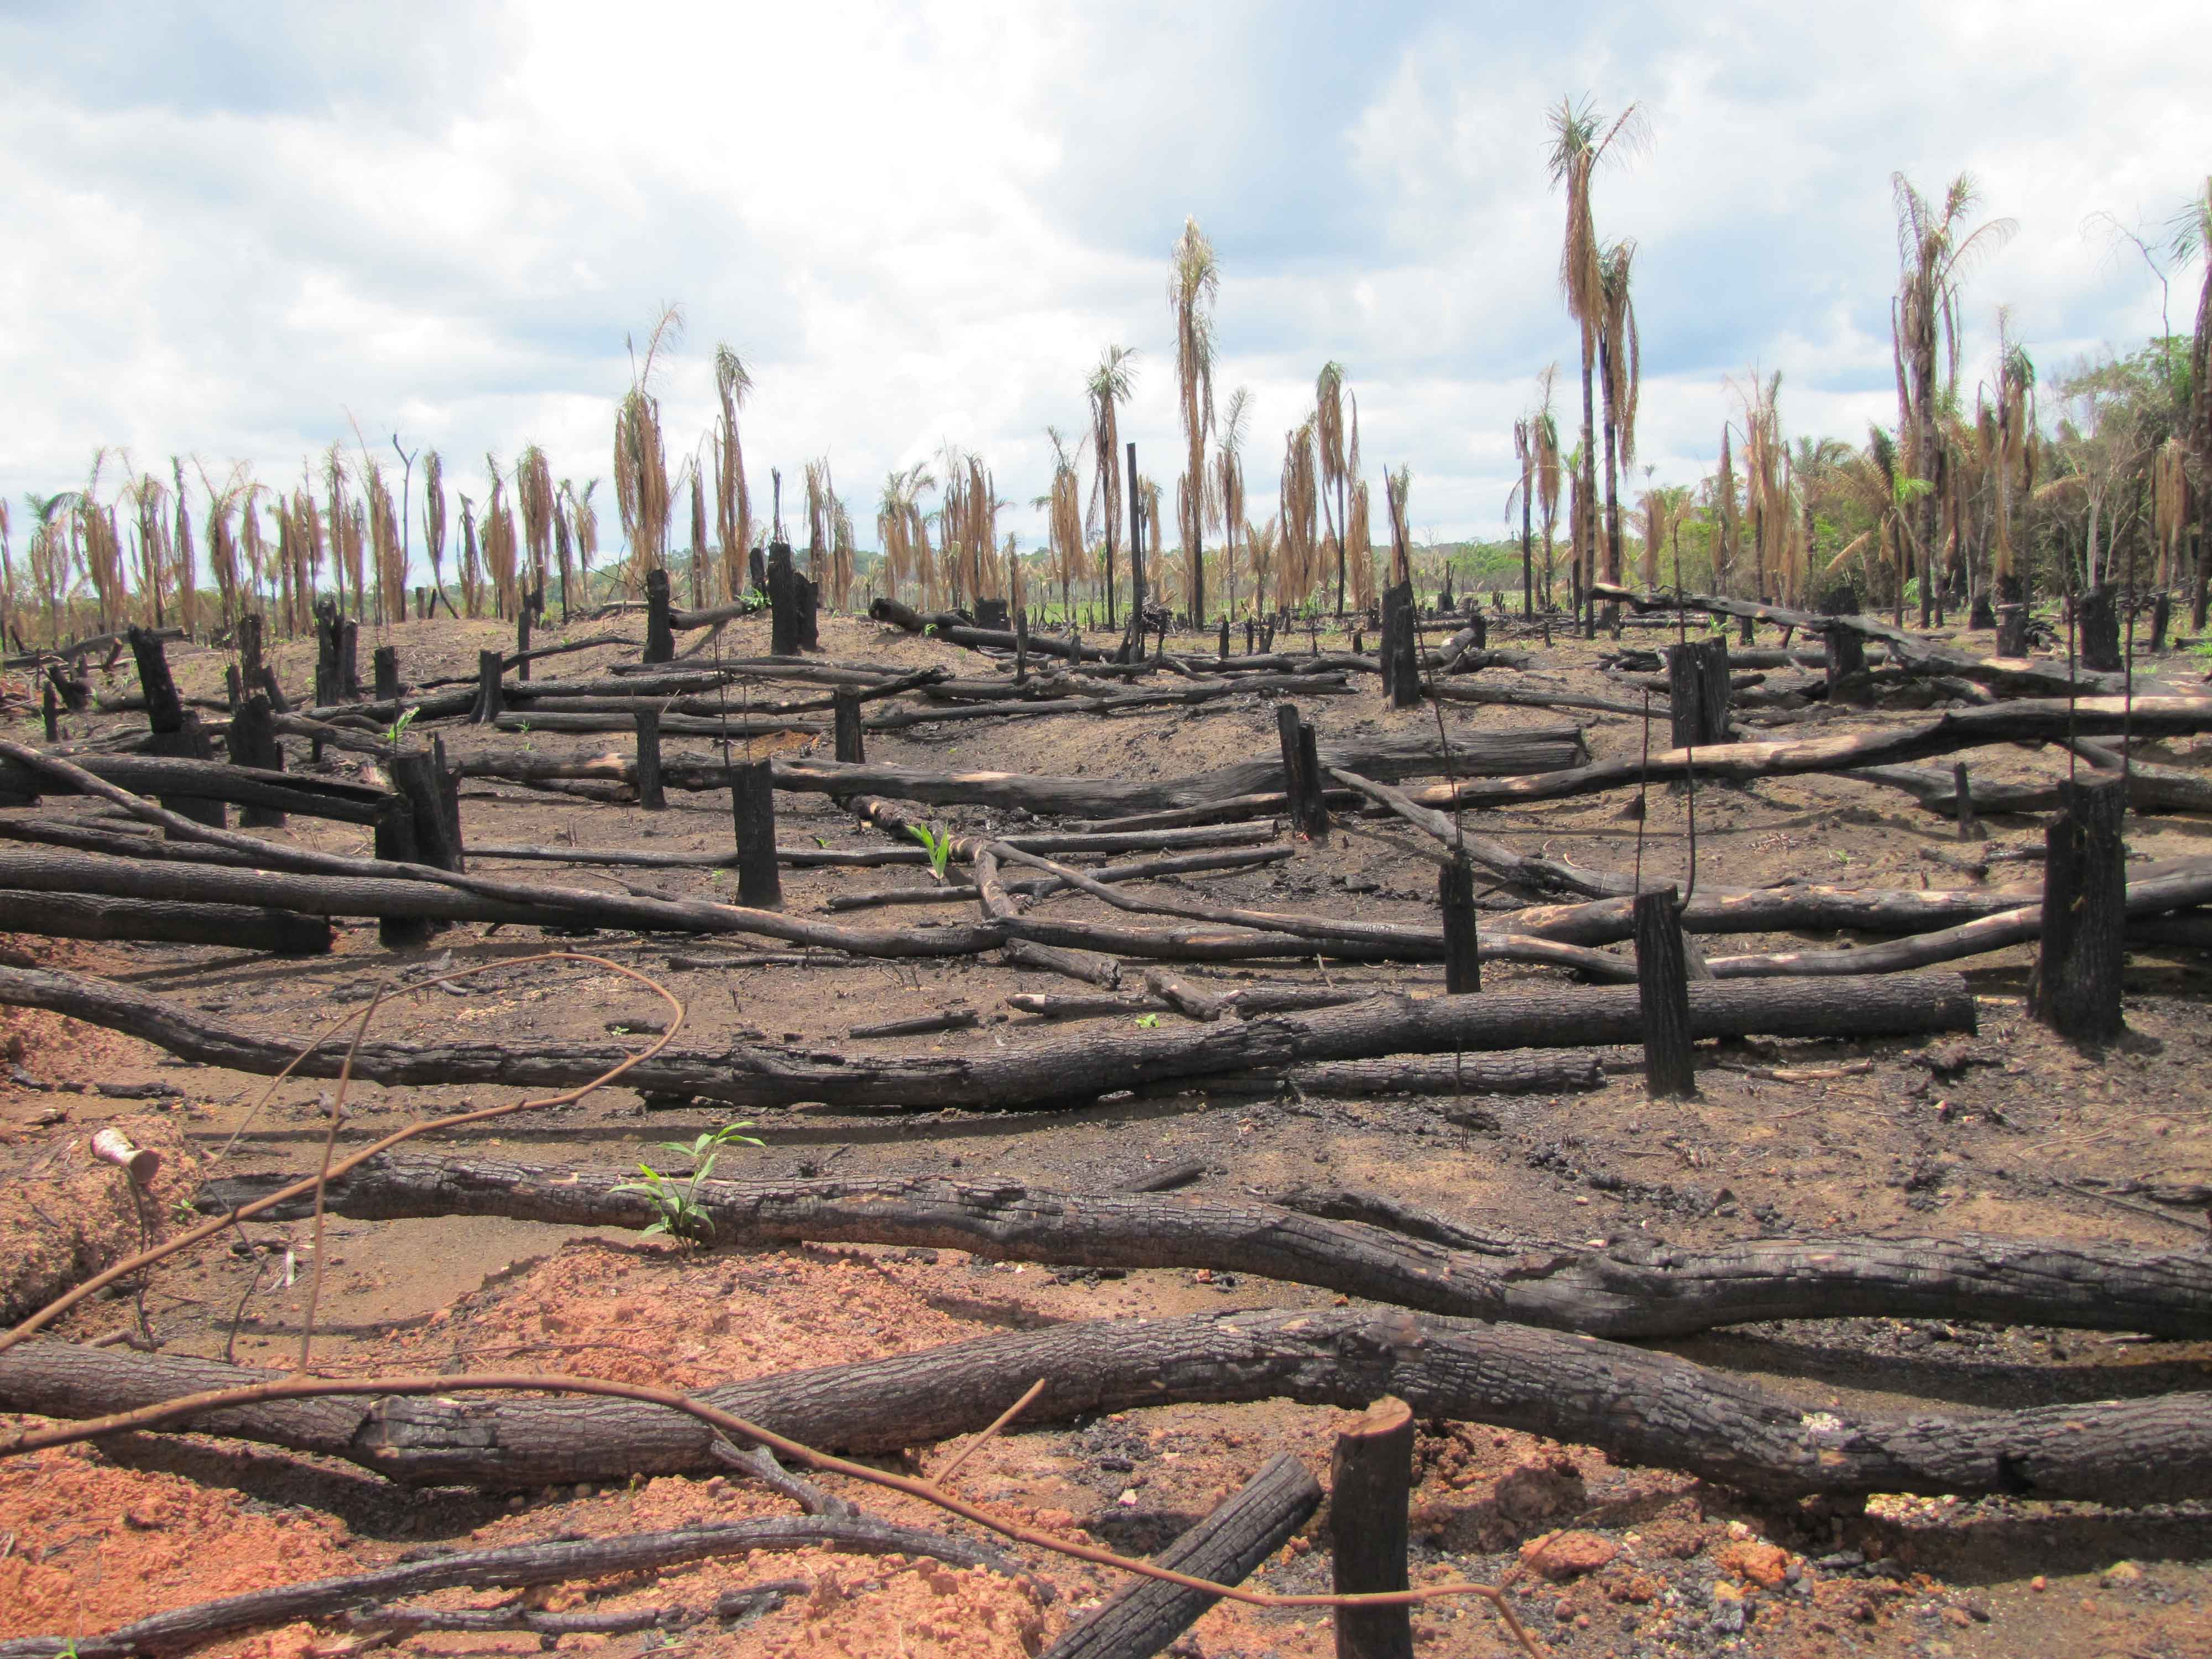 Thesis for research paper on deforestation in rainforest